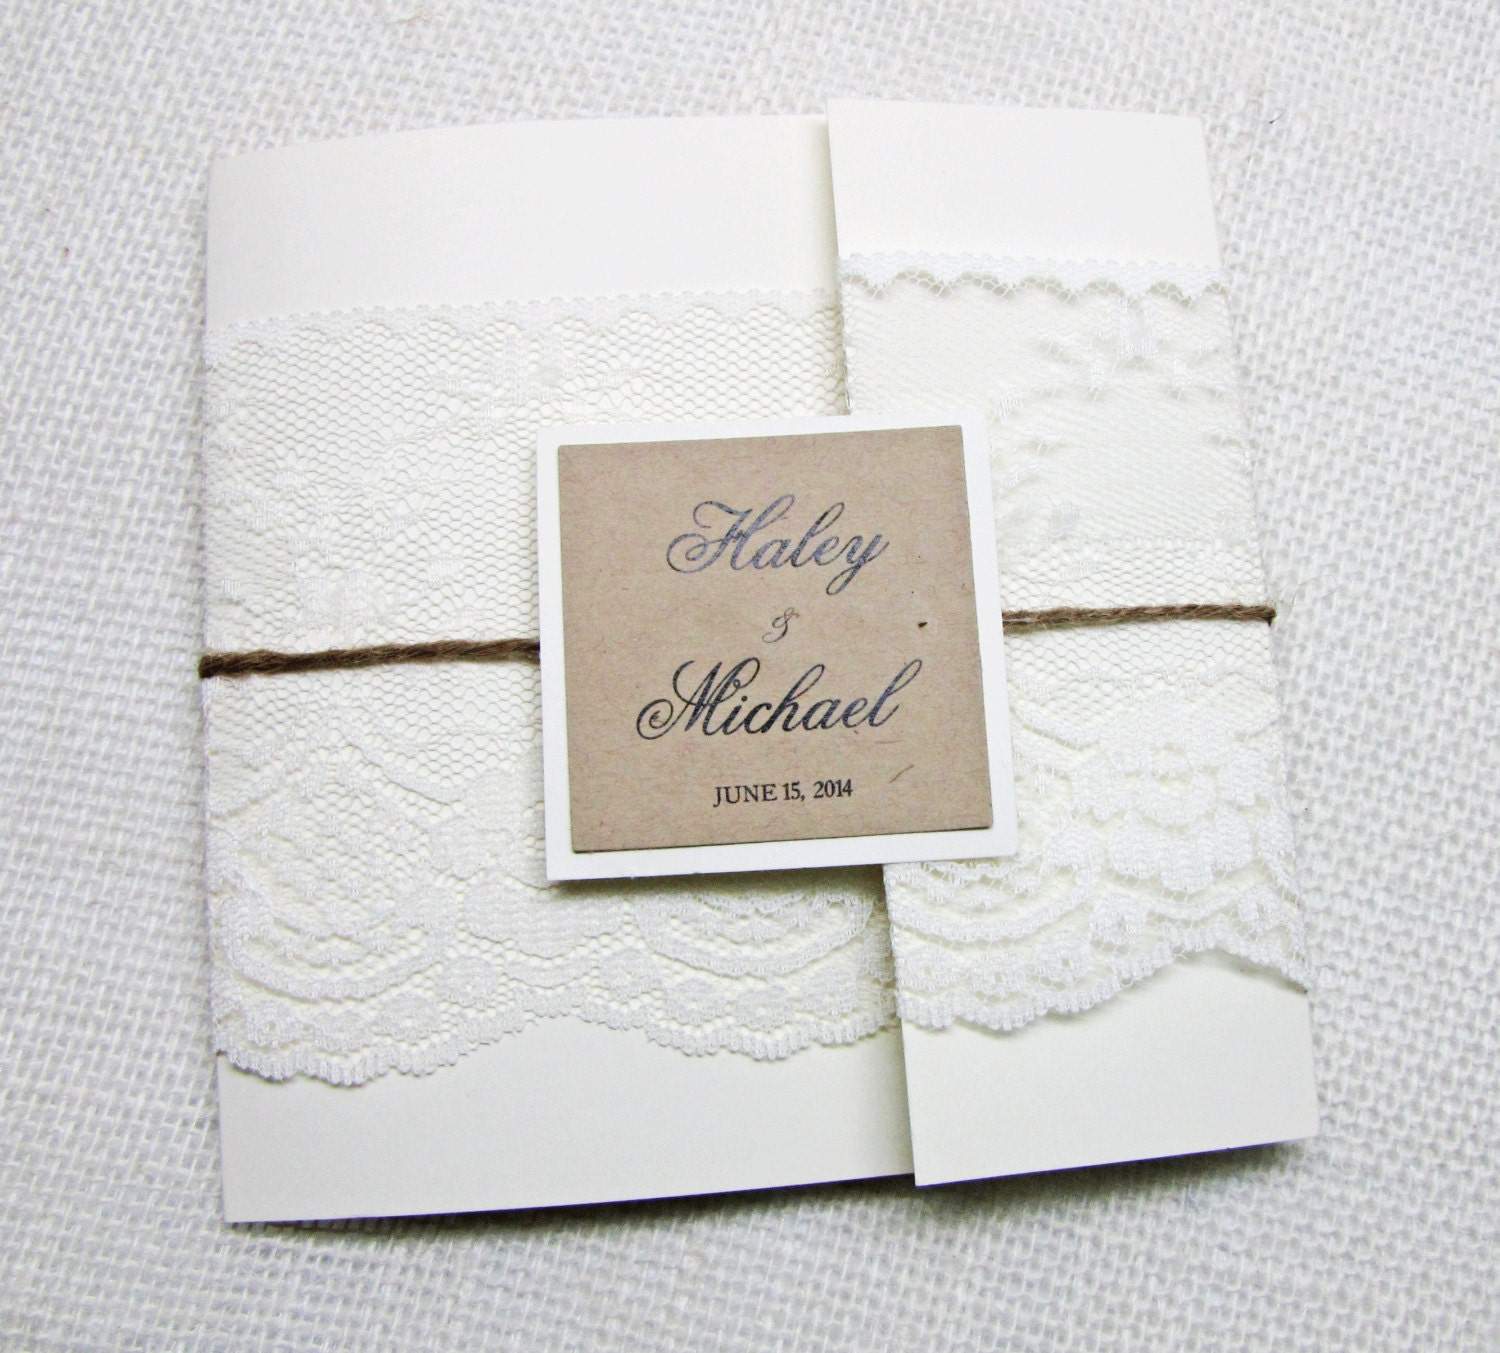 Rustic Lace Pocket Wedding Invitation With Rustic Lace And